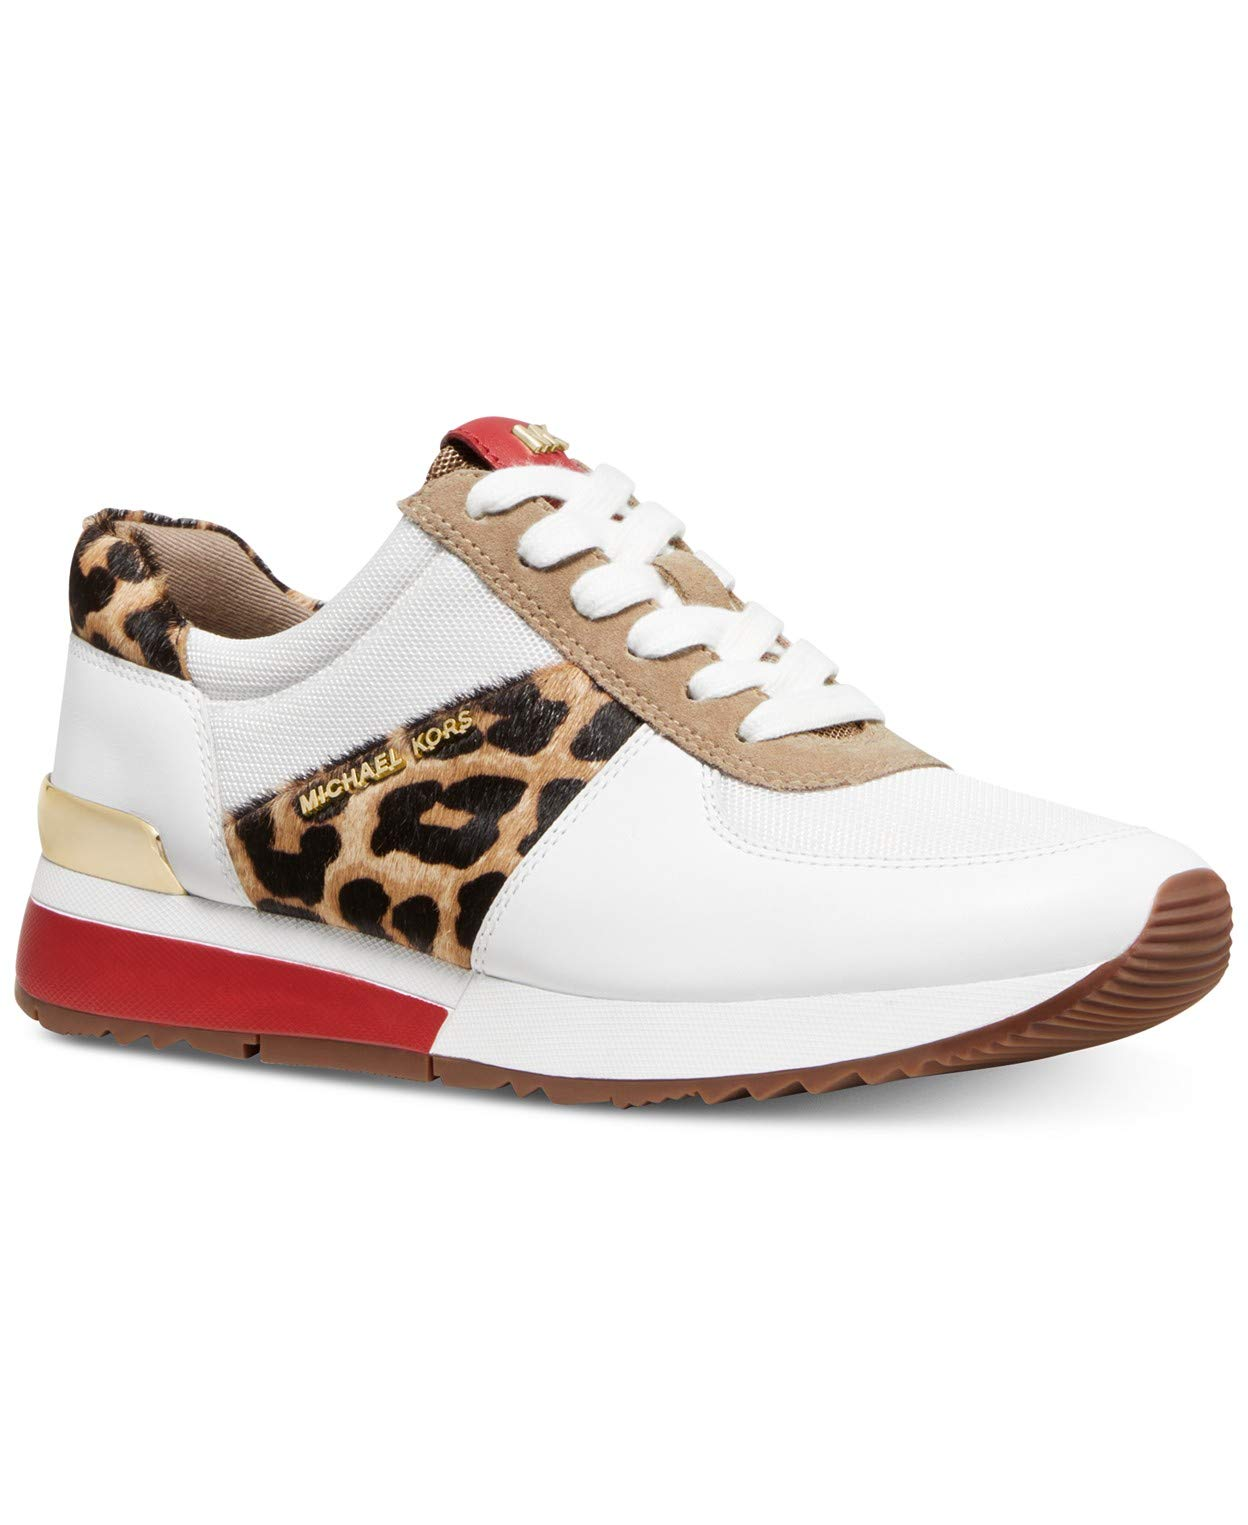 Michael Kors MK Women's Allie Trainer Leather Sneakers Shoes Natural Cheetah (5)